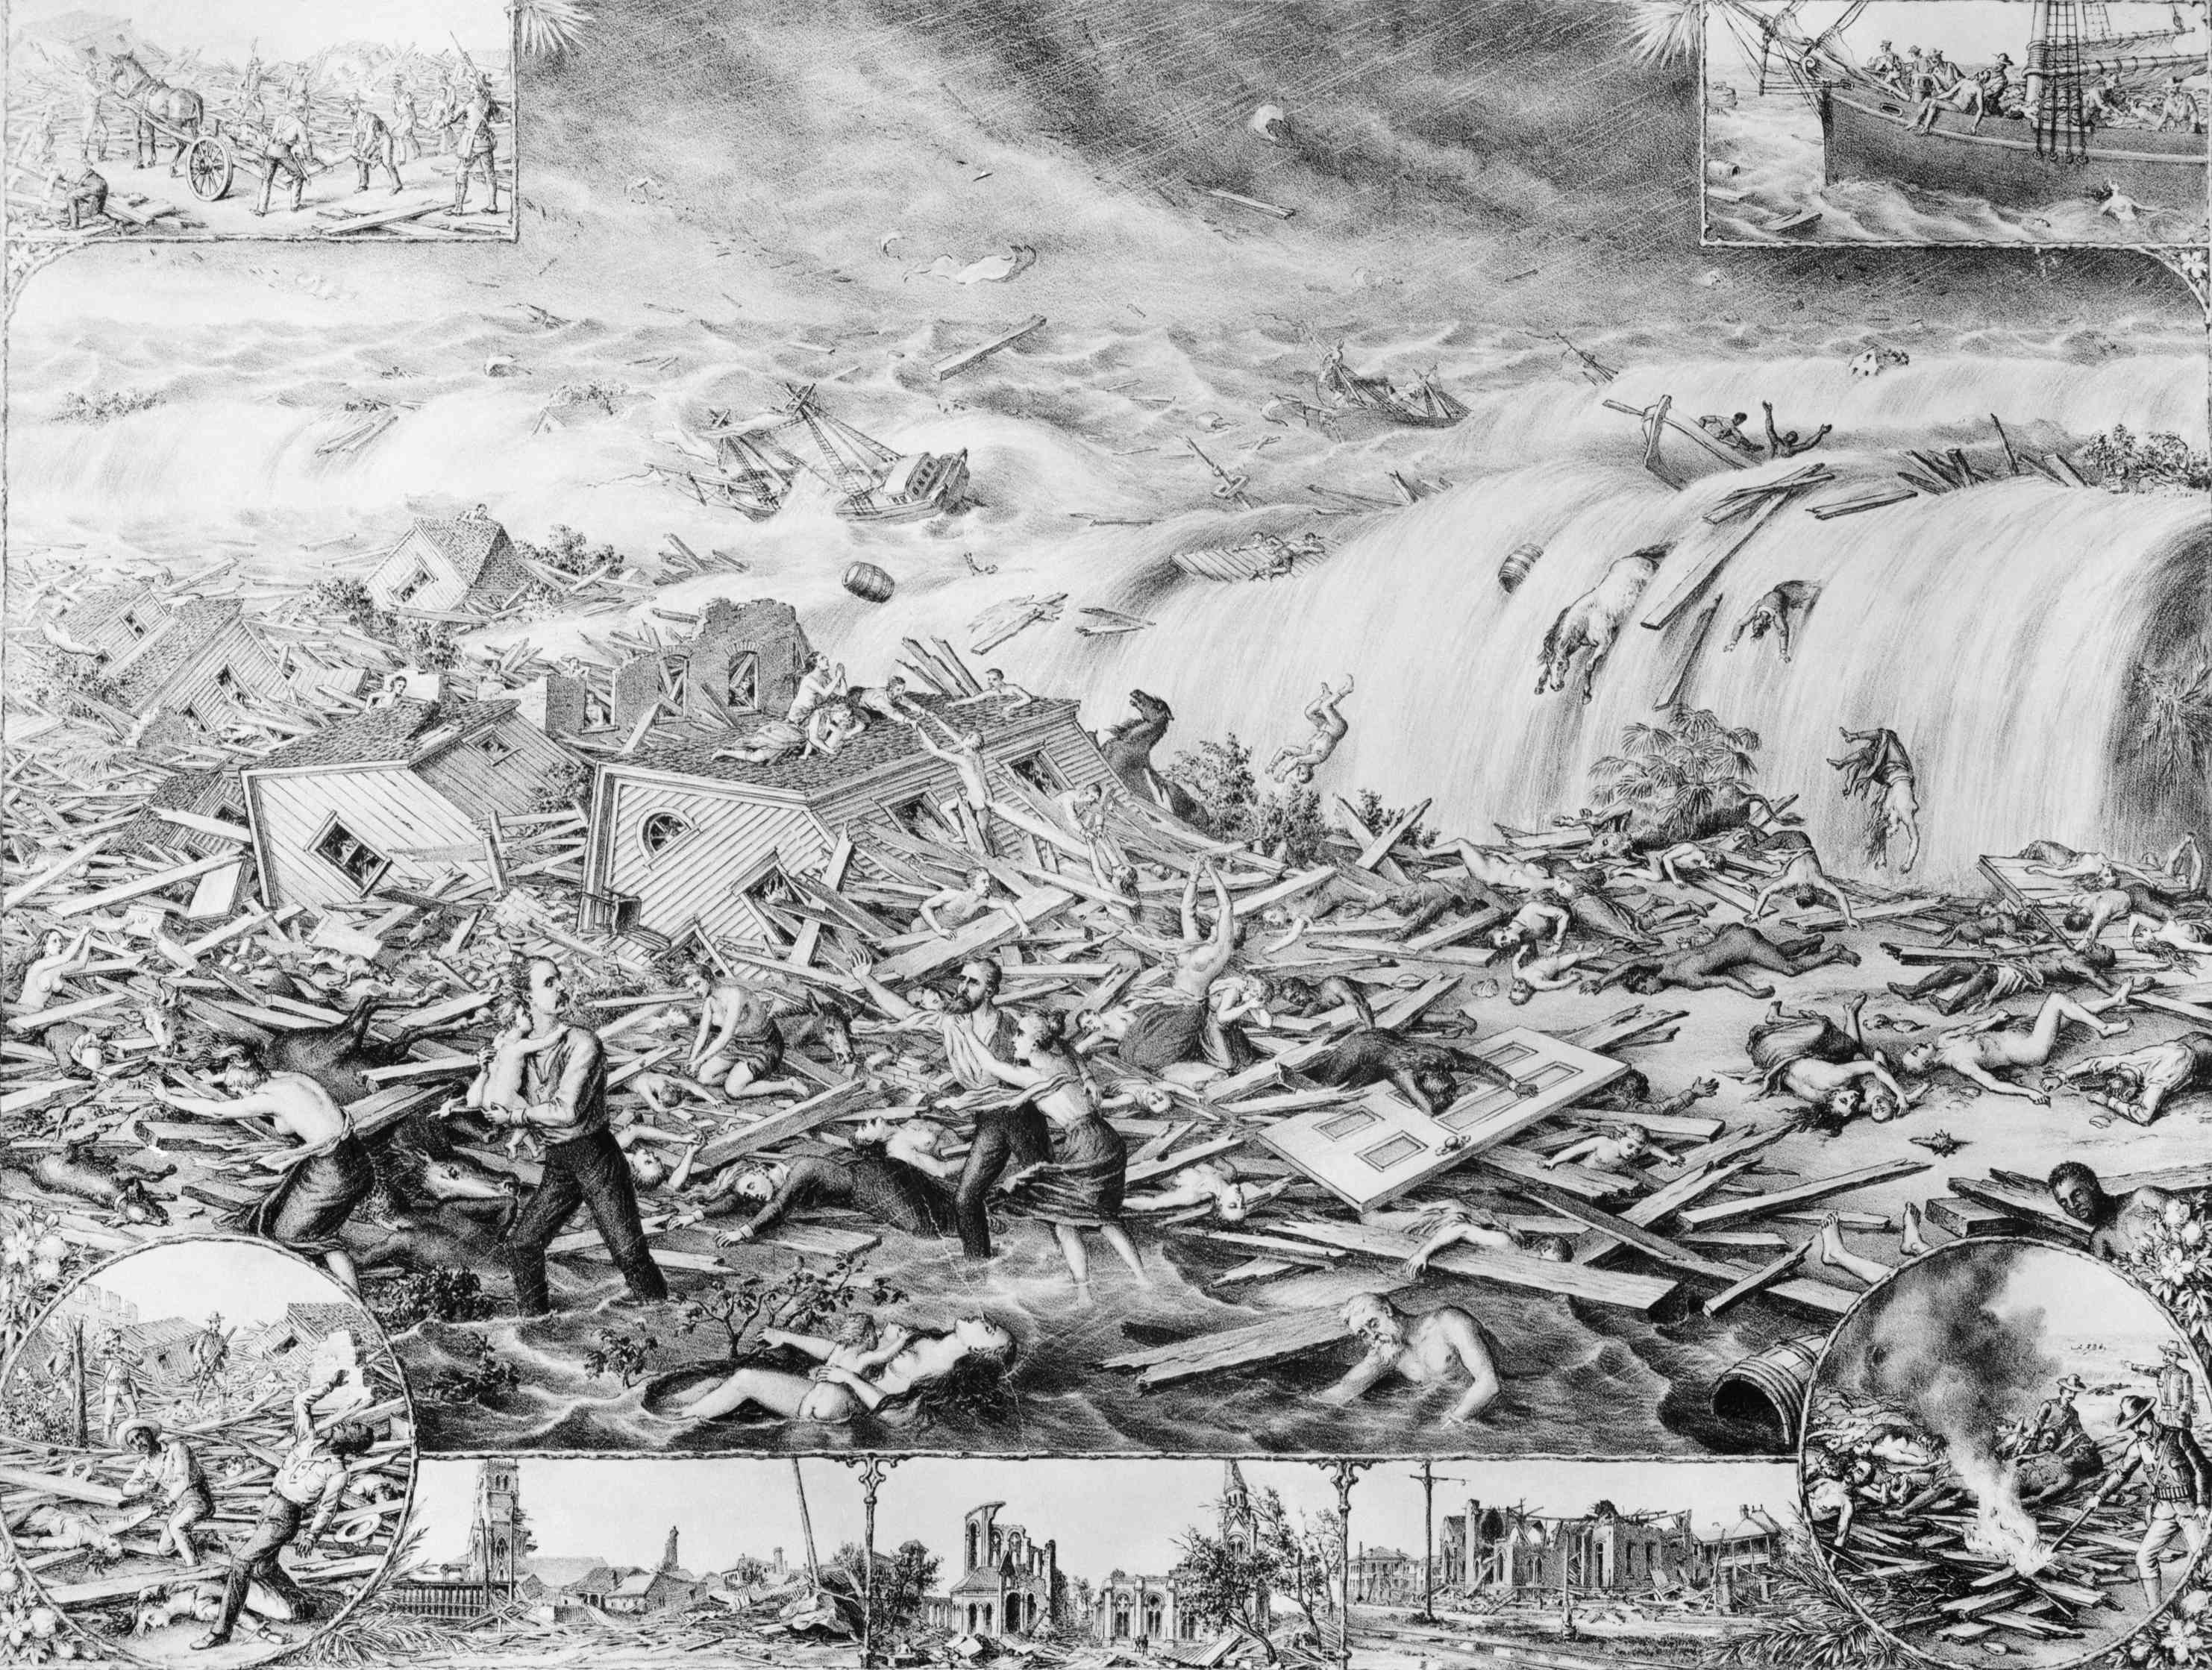 Lithograph depicting of the gulf tidal wave that devastated Galveston, TX, on September 8, 1900.